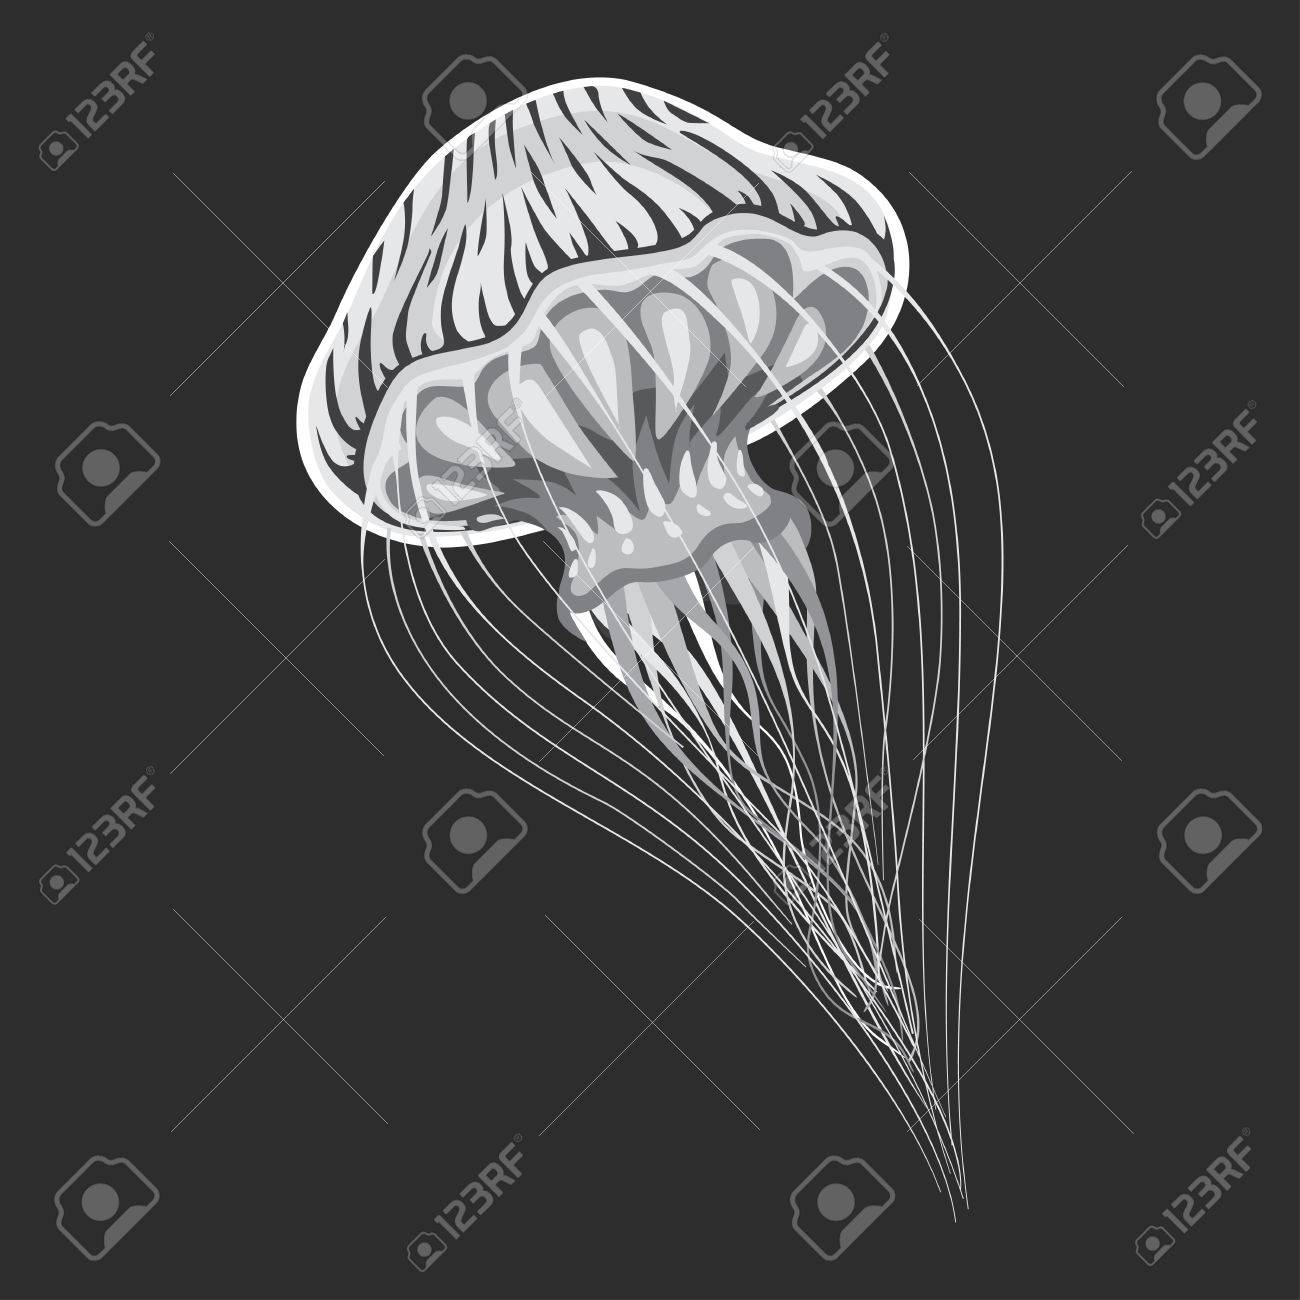 Sea or ocean stripping medusa or jellyfish, blubber or jellies